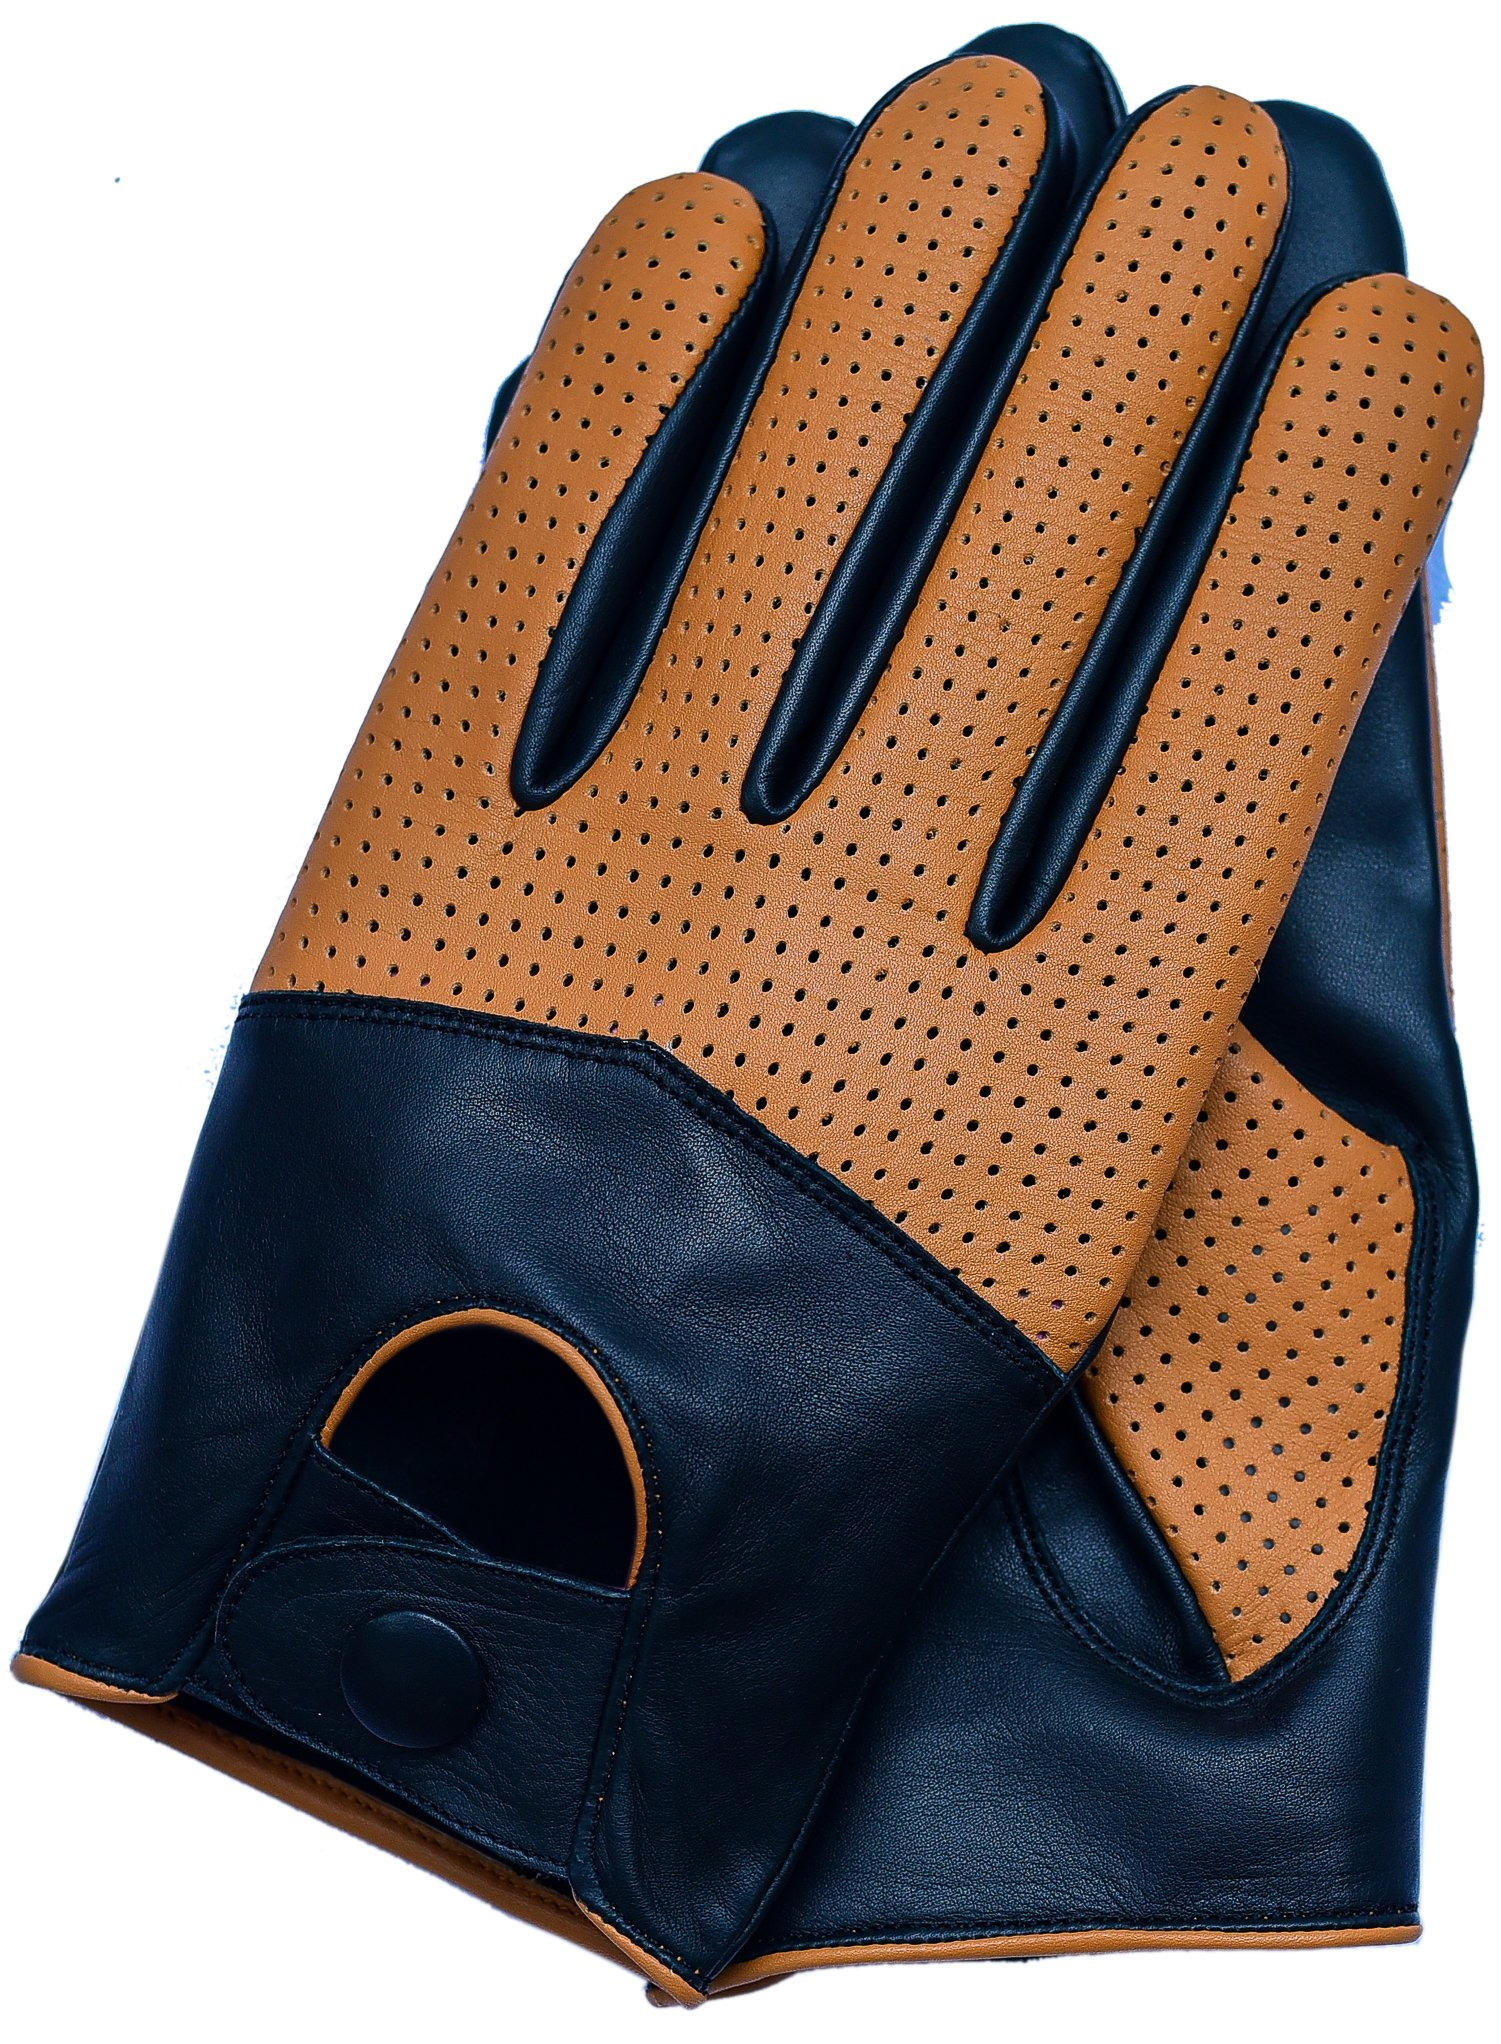 Riparo Motorsports Men's Leather Driving Gloves (Small, Black/Cognac)